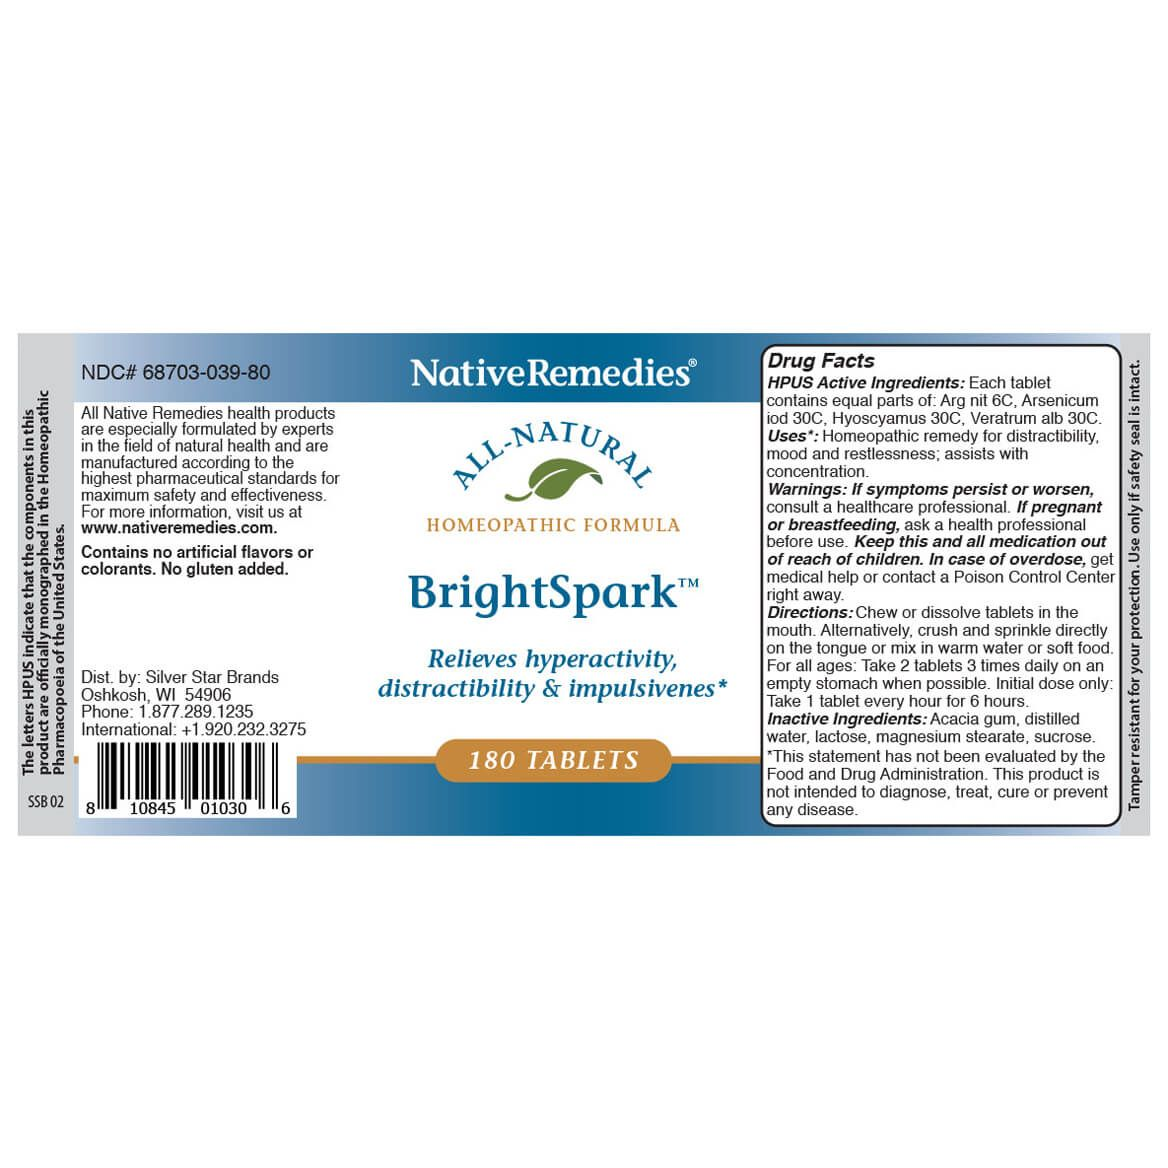 BrightSpark™ Tablets for Attention Problems & Hyperactivity-351827